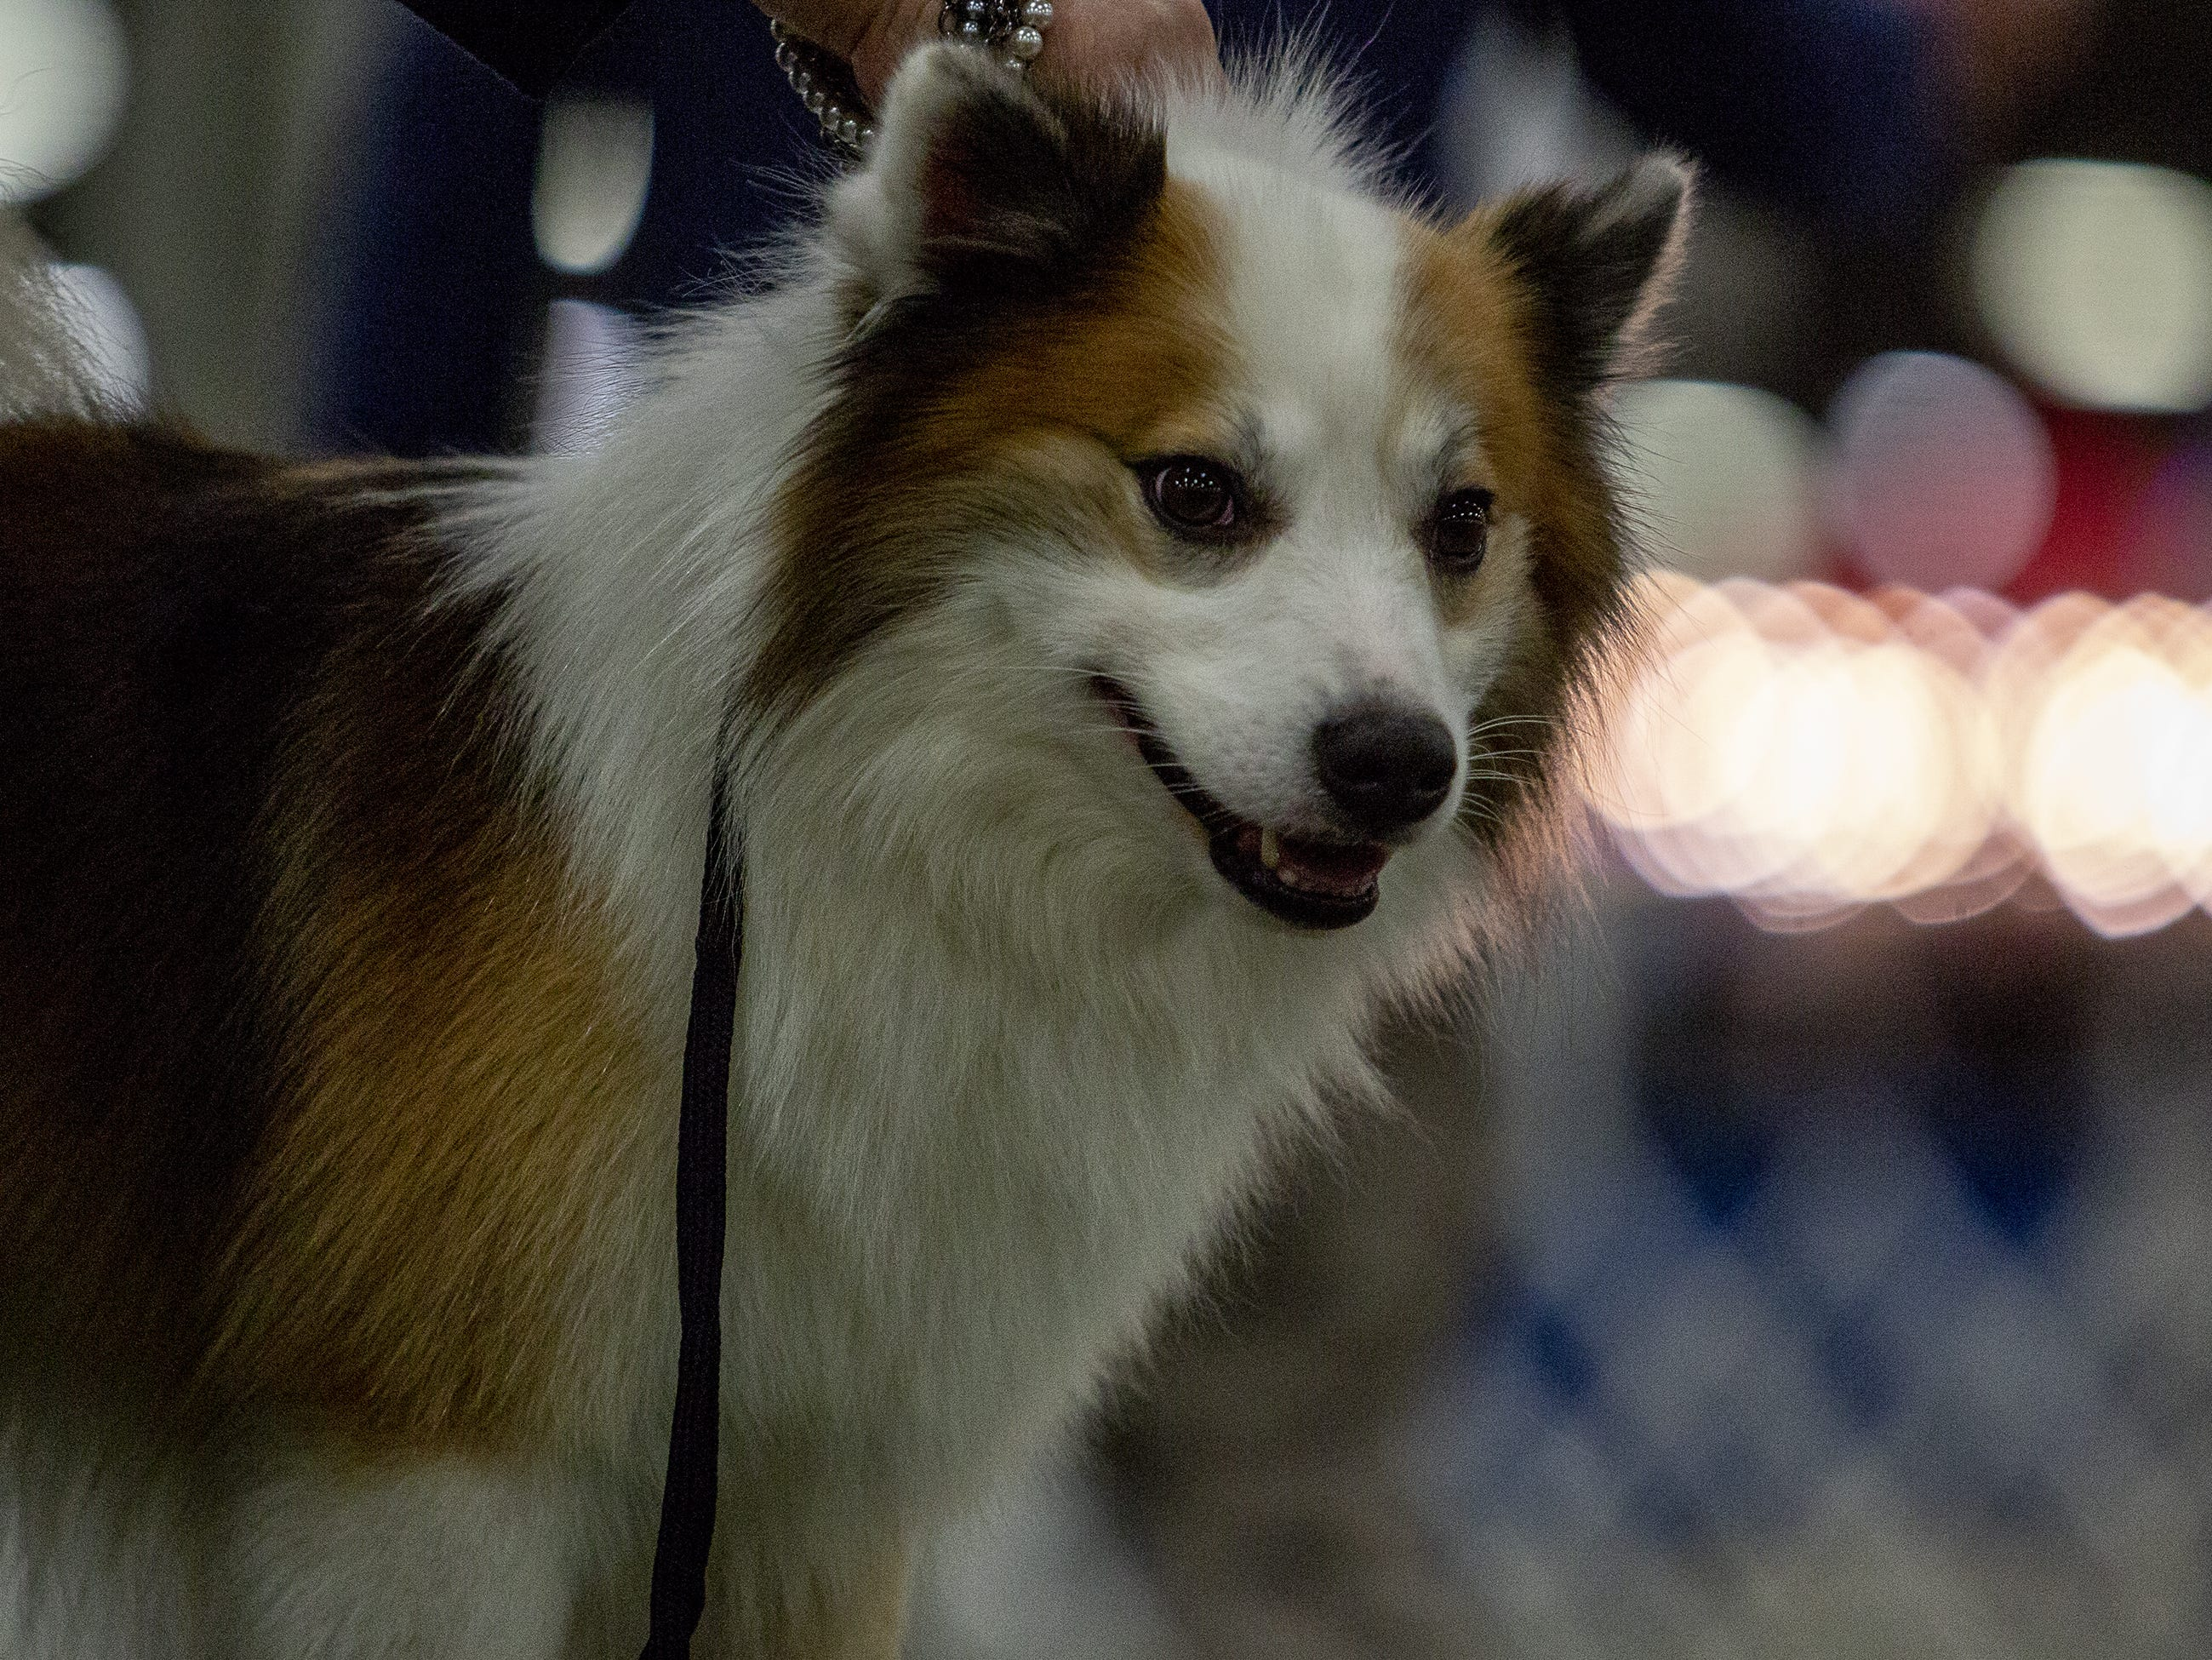 Barrett, an Icelandic Sheepdog, waits for his judge at the 2019 Kentuckiana Cluster of Dog Shows at the Kentucky Exposition Center. March 14, 2019.